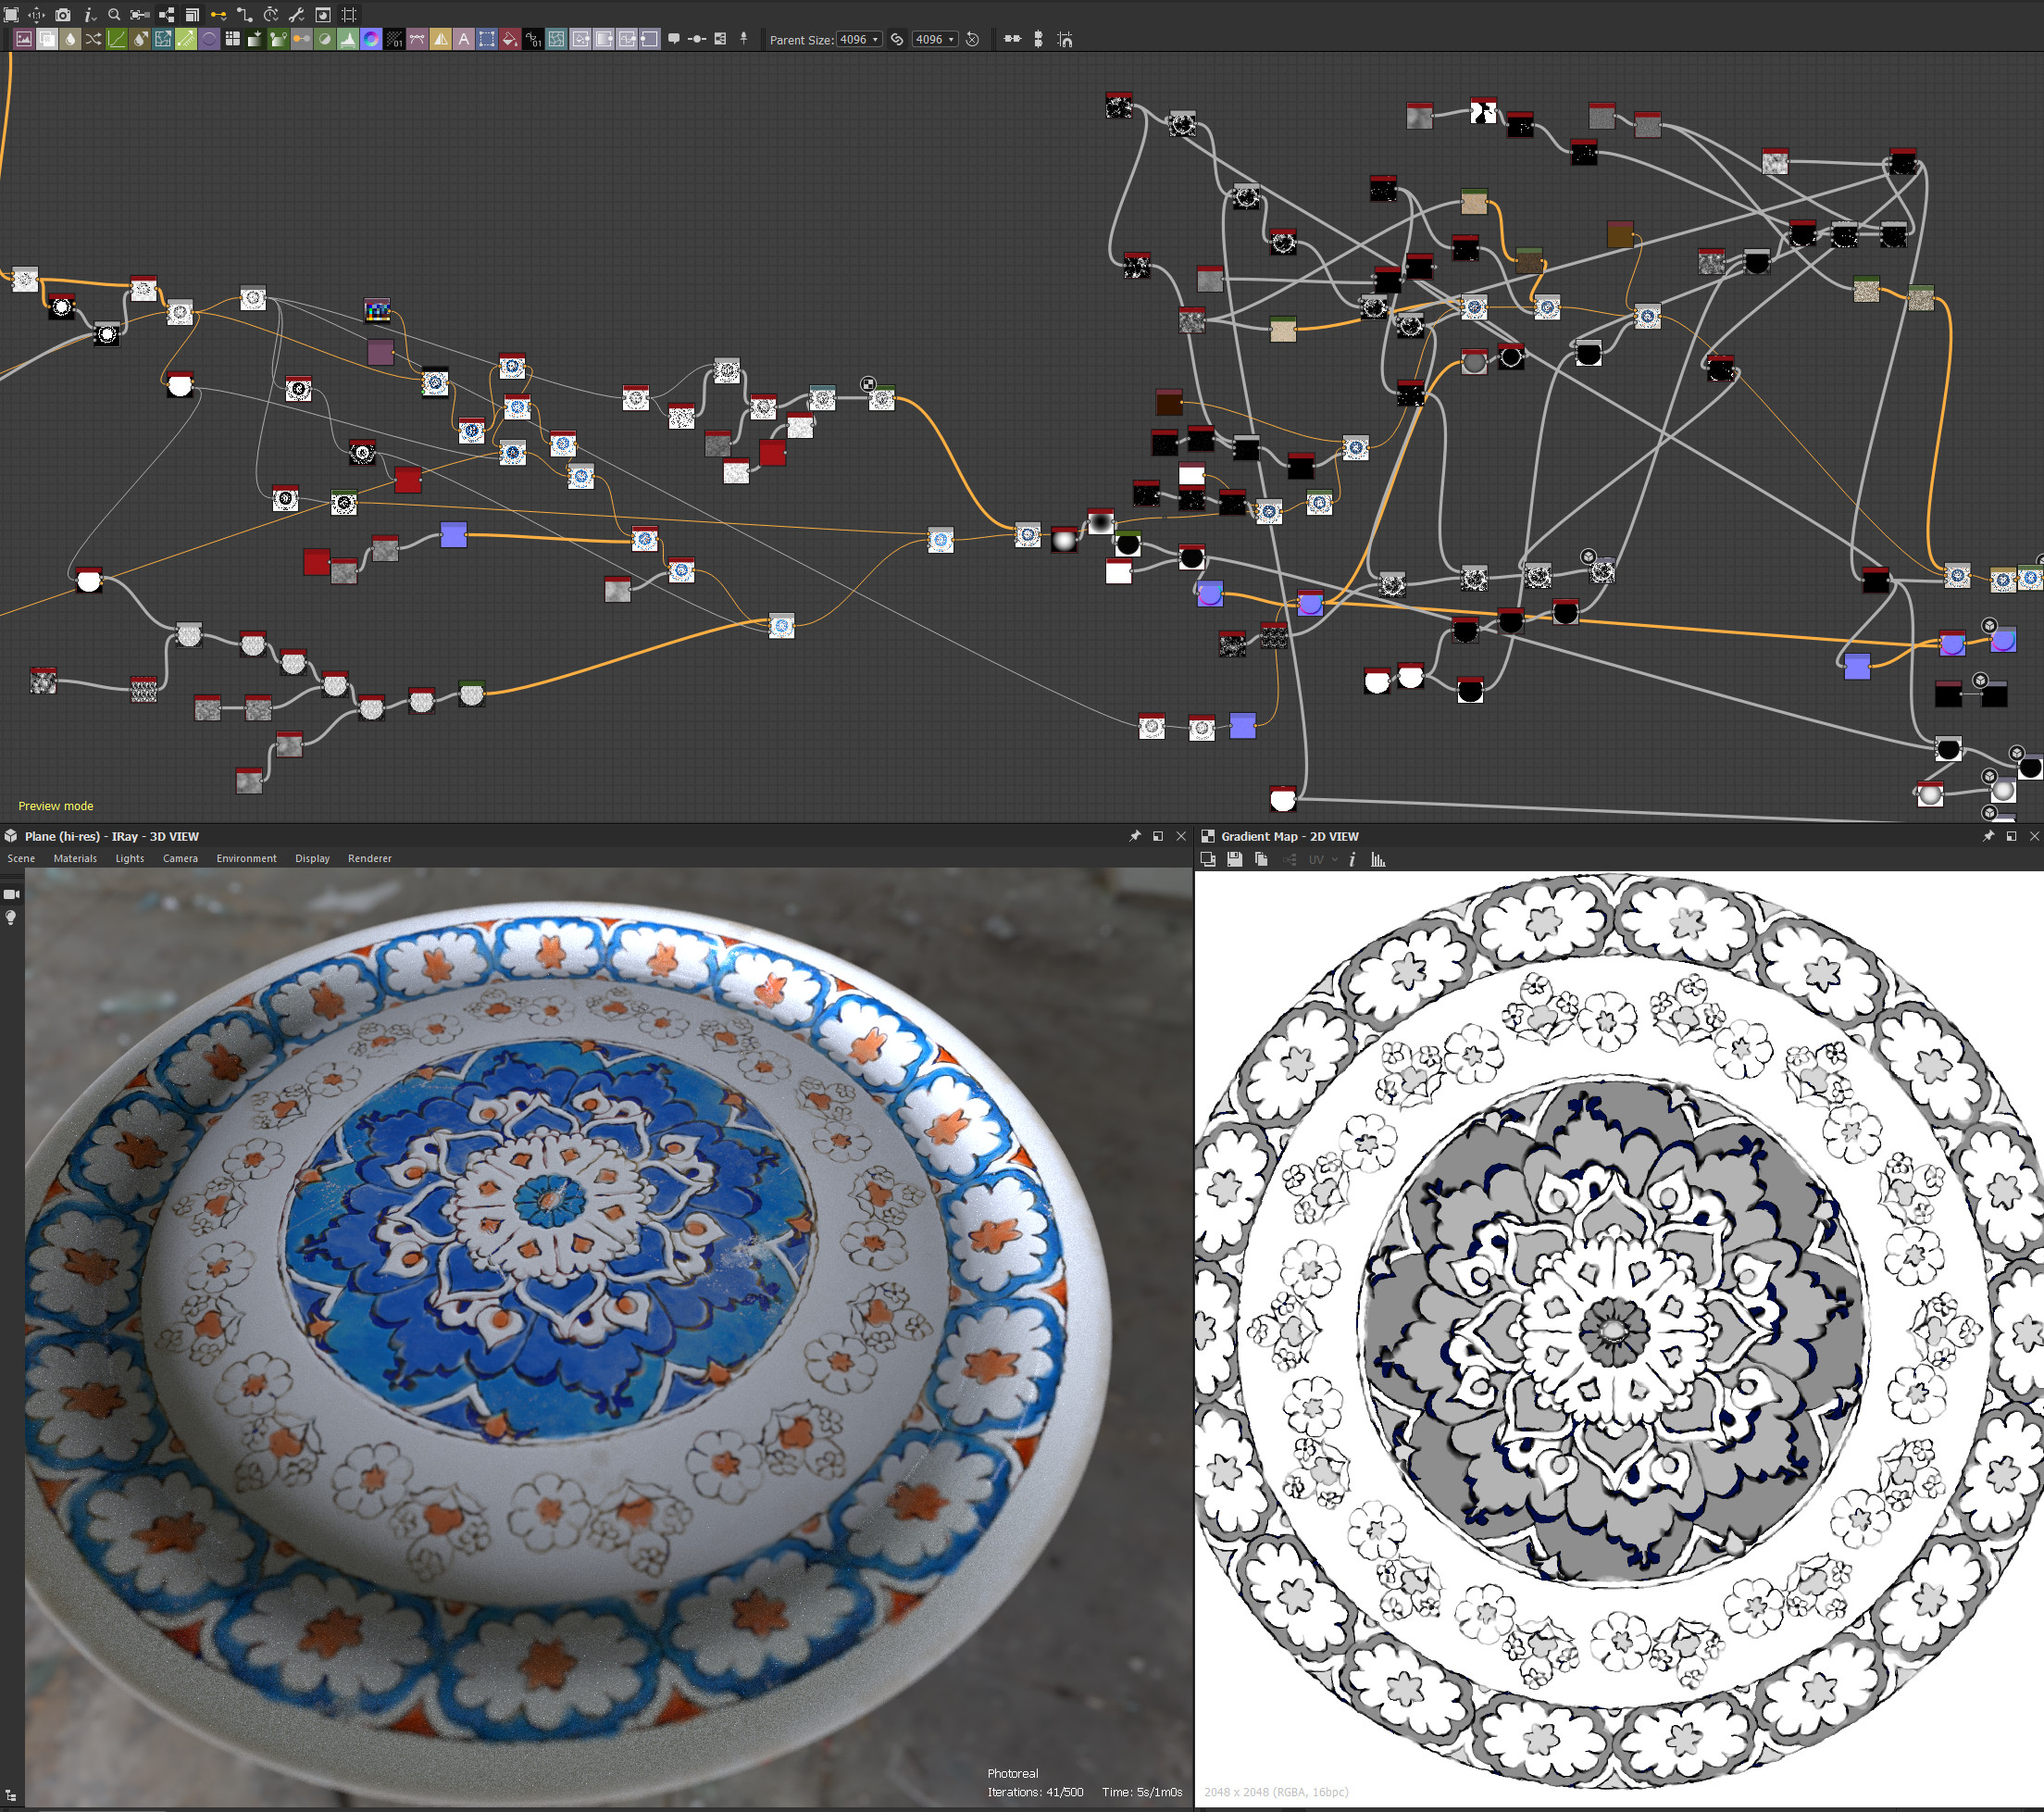 In substance Designer, you can create an infinite number of tiles by selecting the desired period template and playing with the parameters.